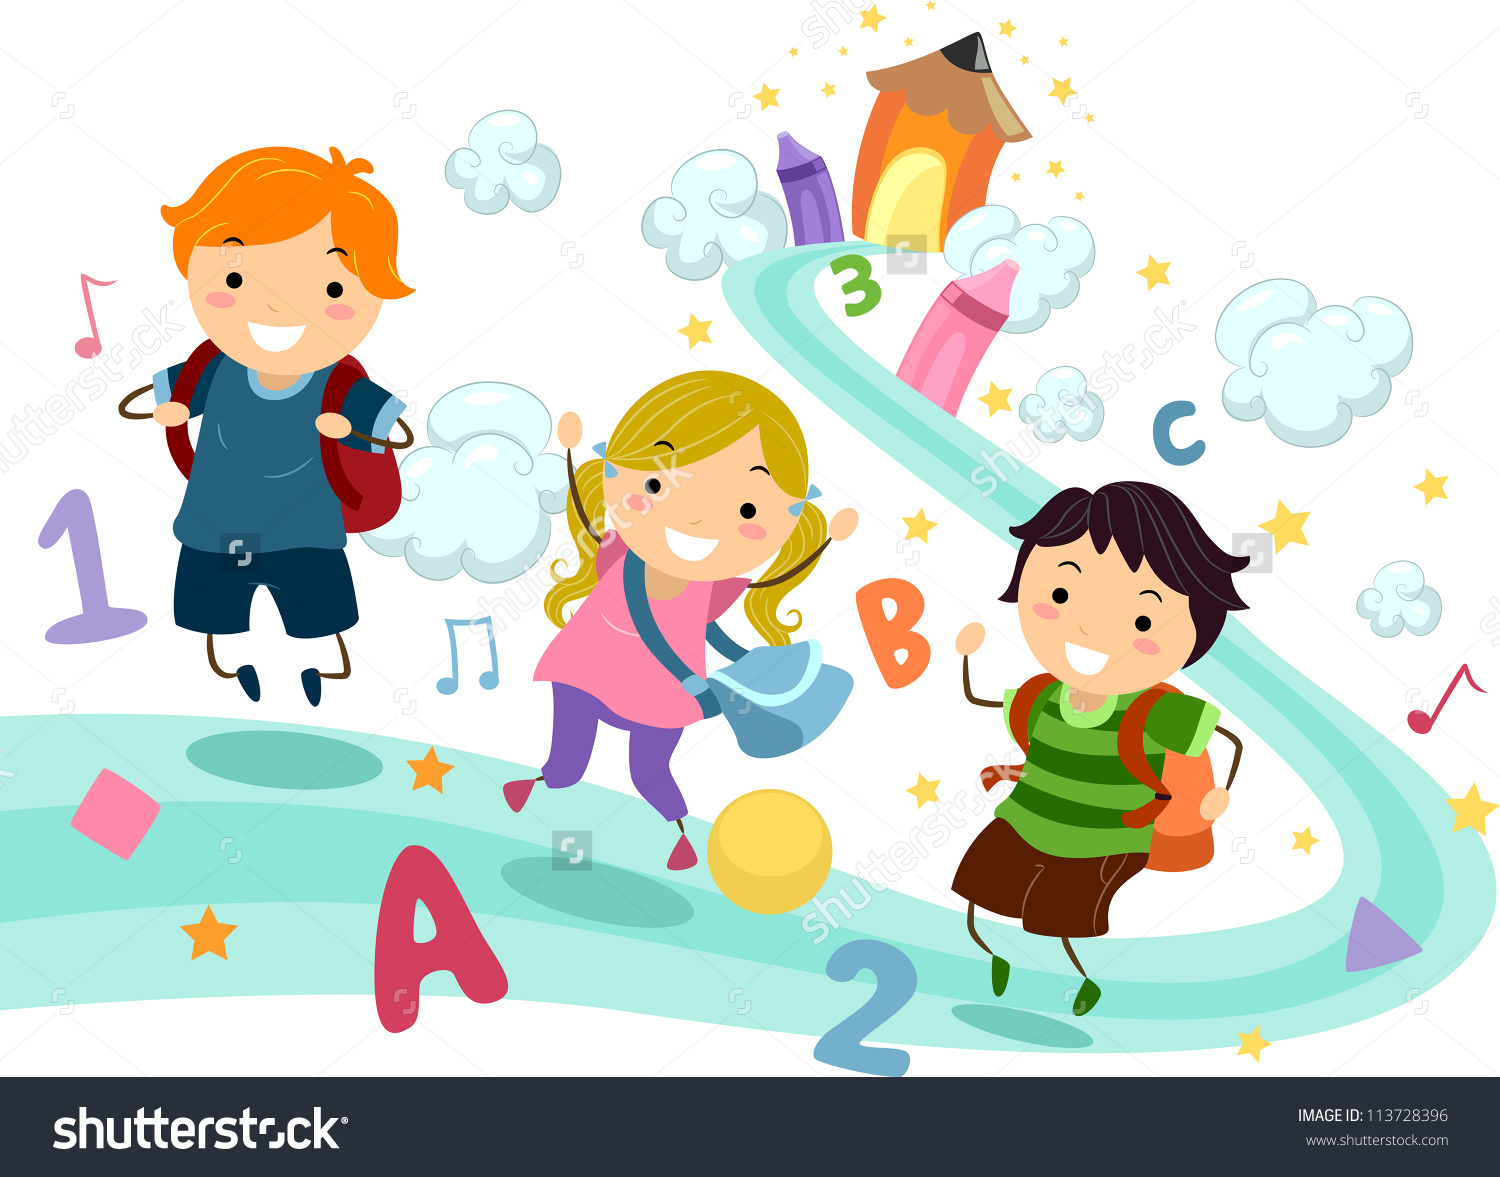 Clipart kids letters jpg Illustration Stick Kids Playing Numbers Letters Stock Vector ... jpg